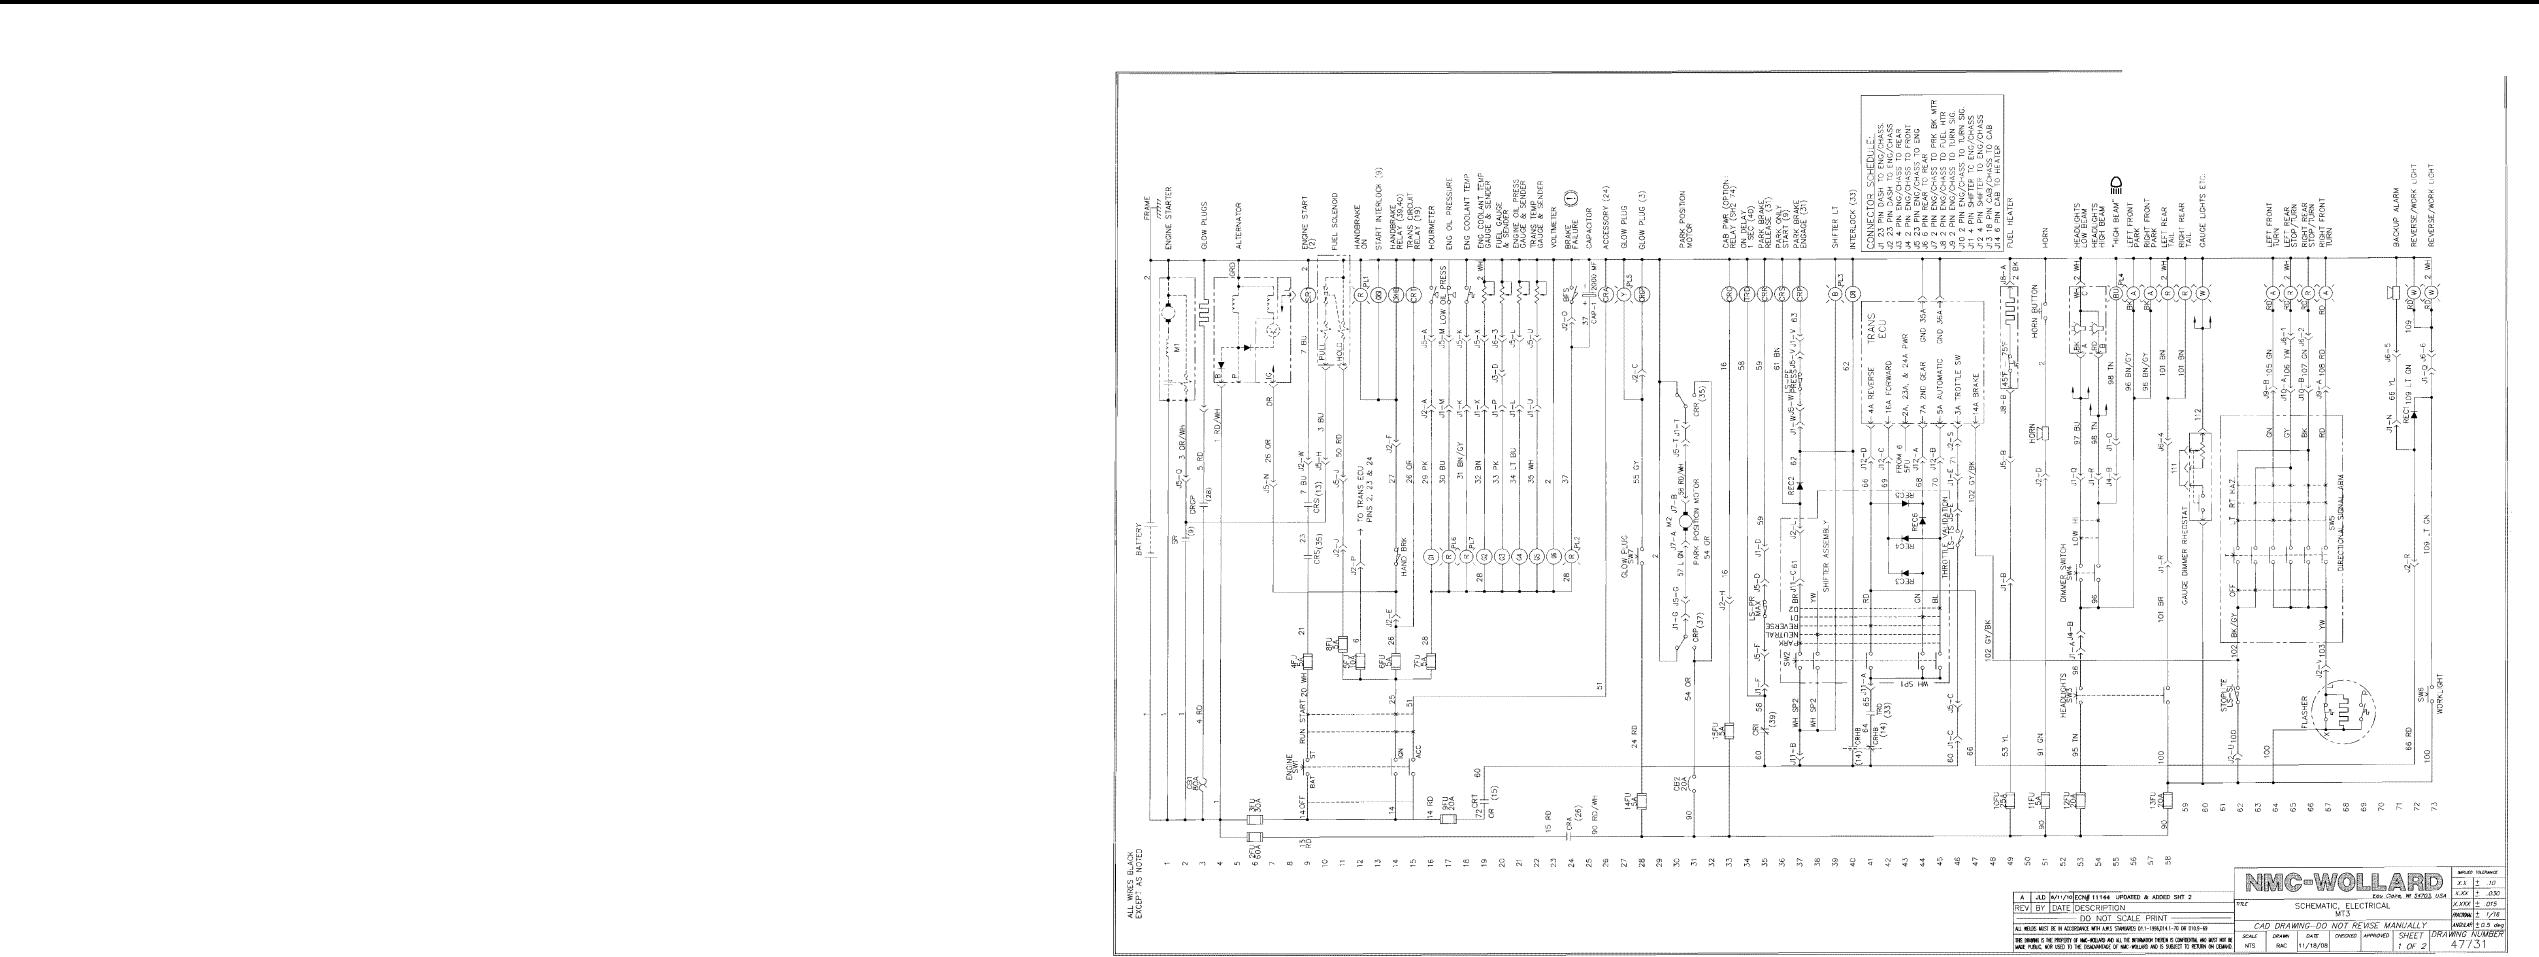 Fo Mt3 Electrical Schematic